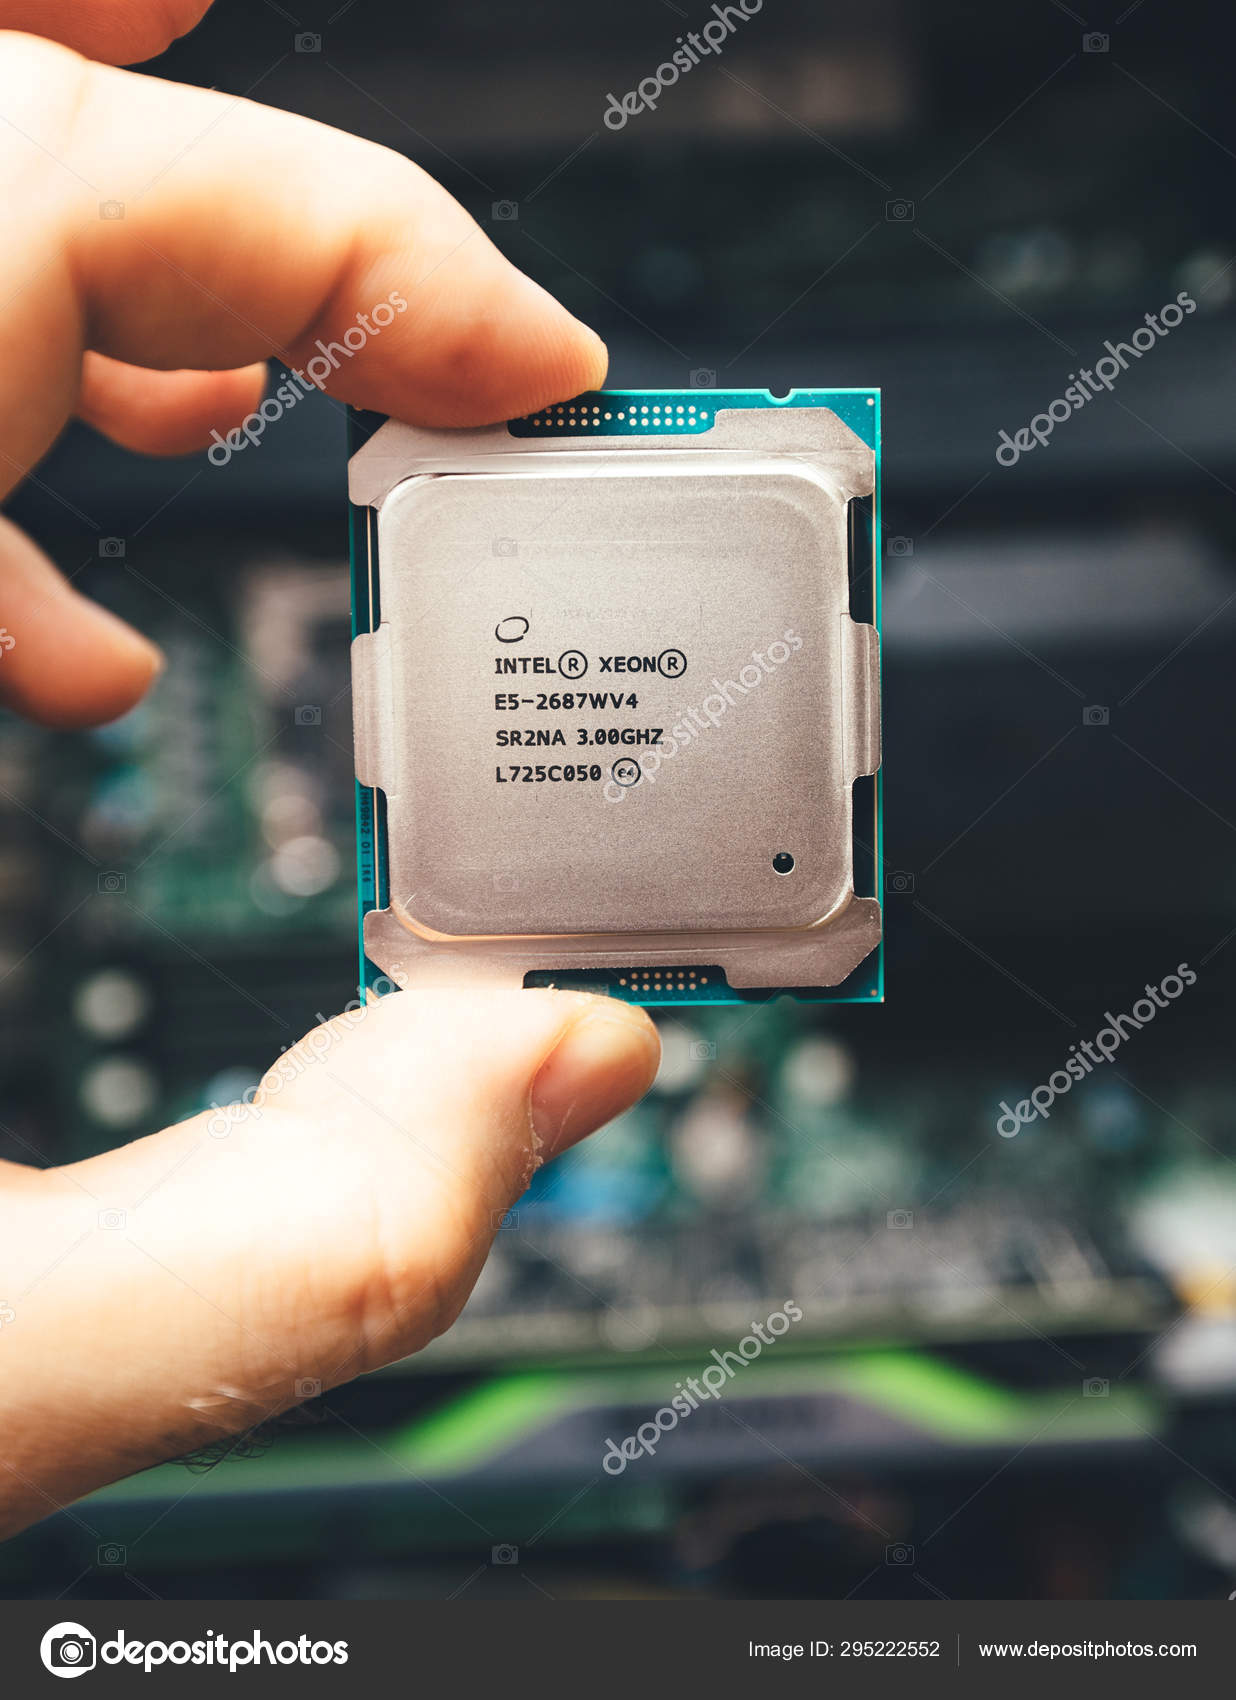 Intel Xeon E5-2687w v4 CPU for Dell Precision Workstation